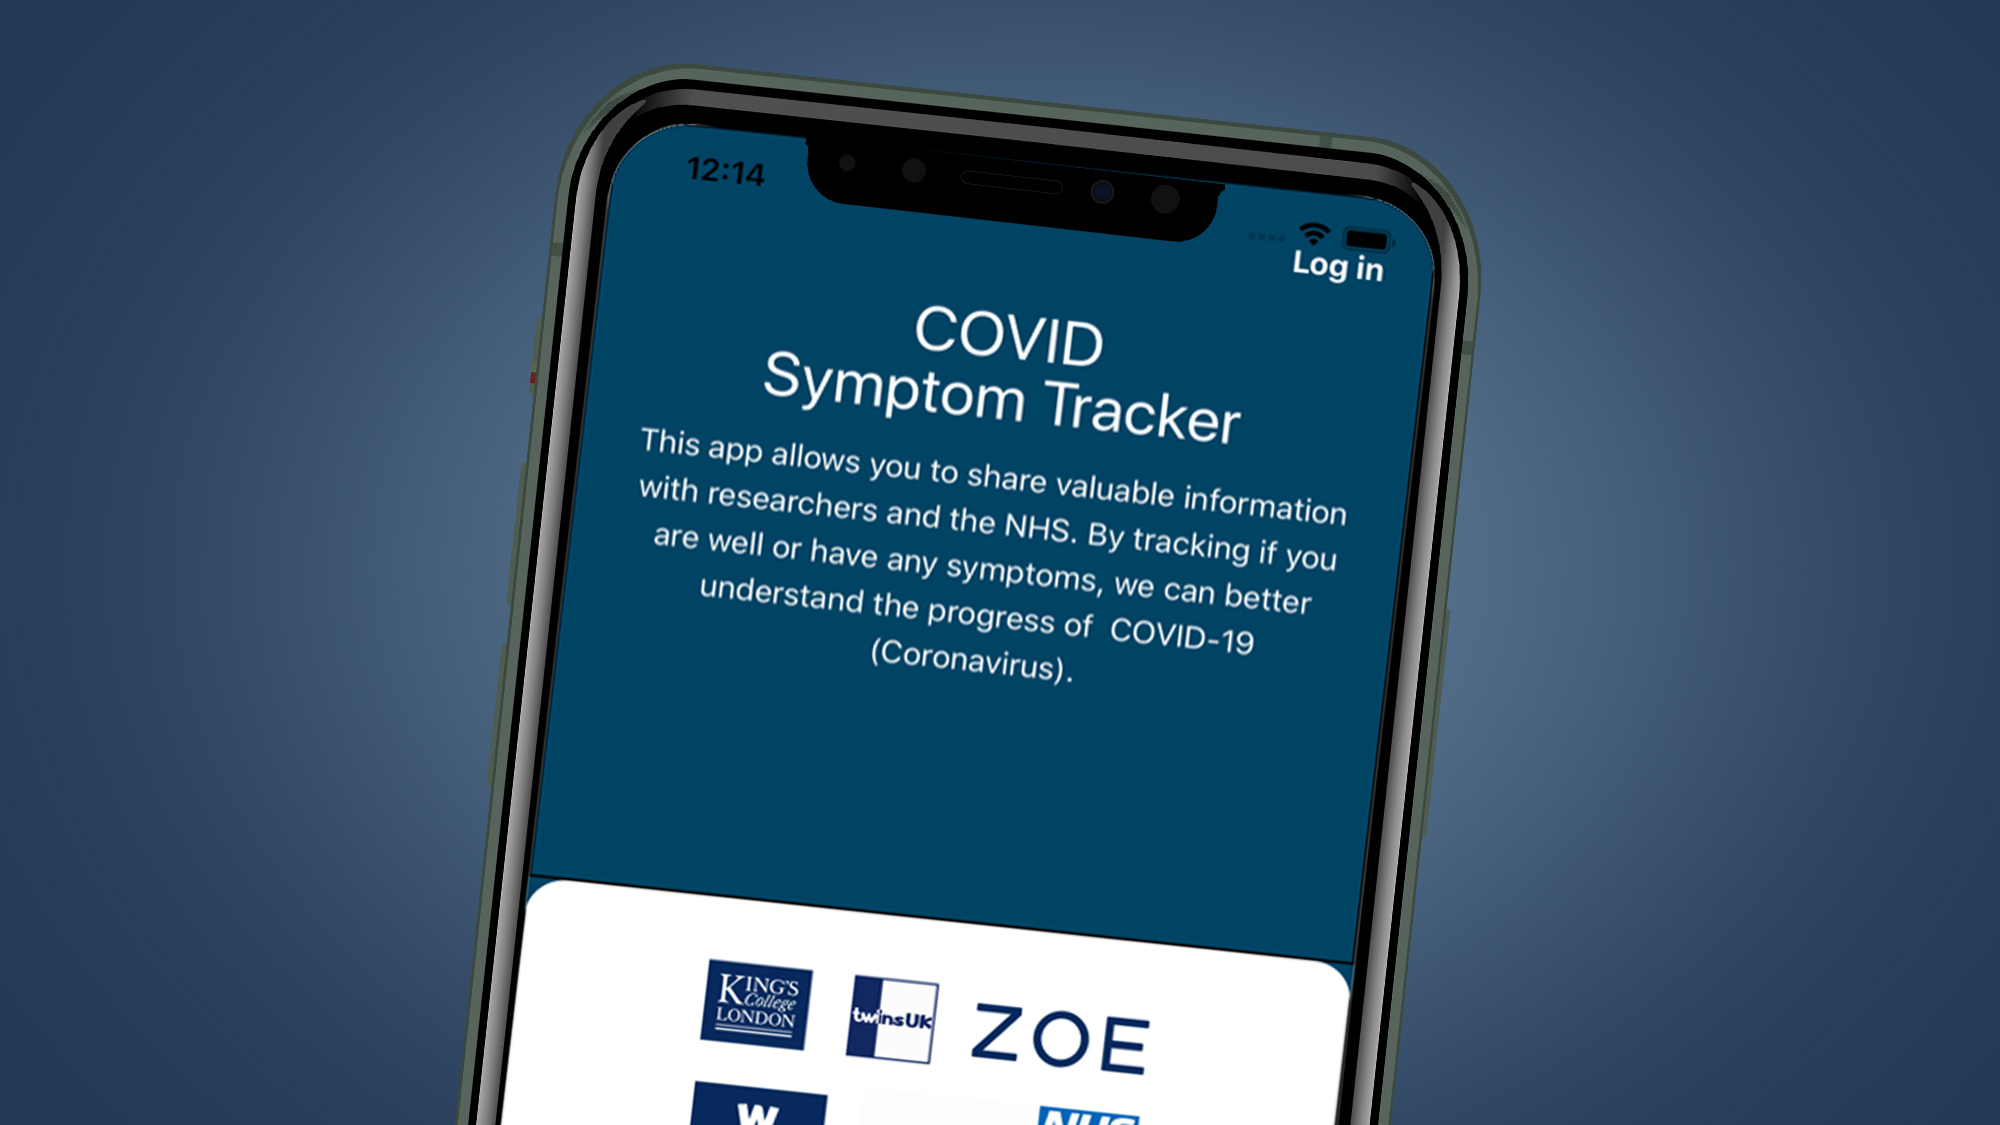 This Covid-19 tracking app lets you help scientists study the coronavirus